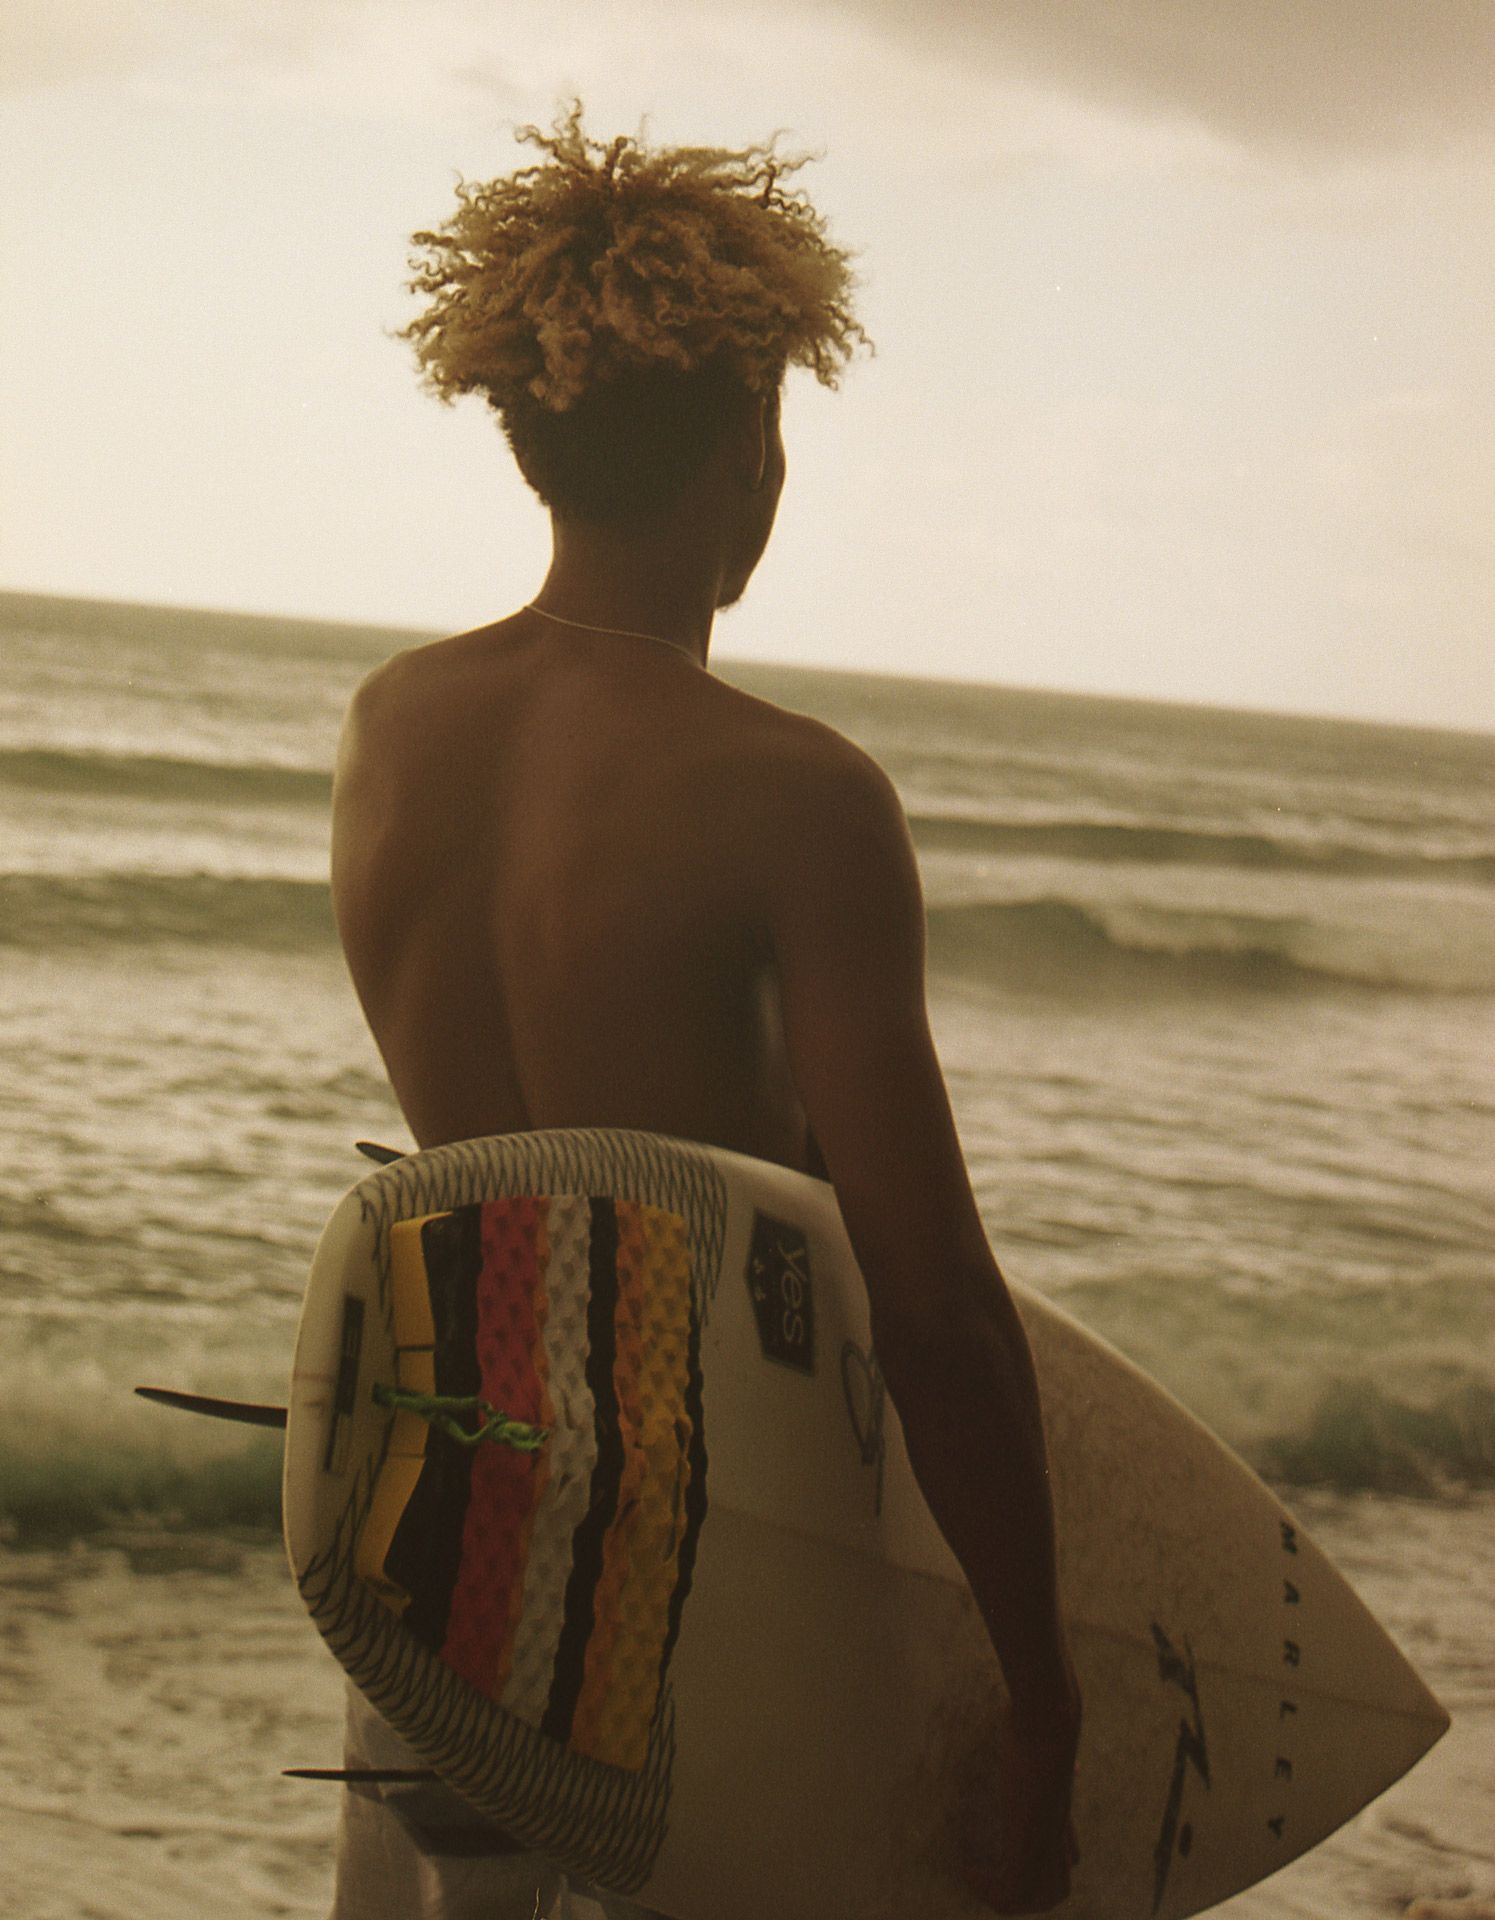 young jamaican man walking toward sea with surfboard under his arm by Oumayma B Tanfous in Jamaica